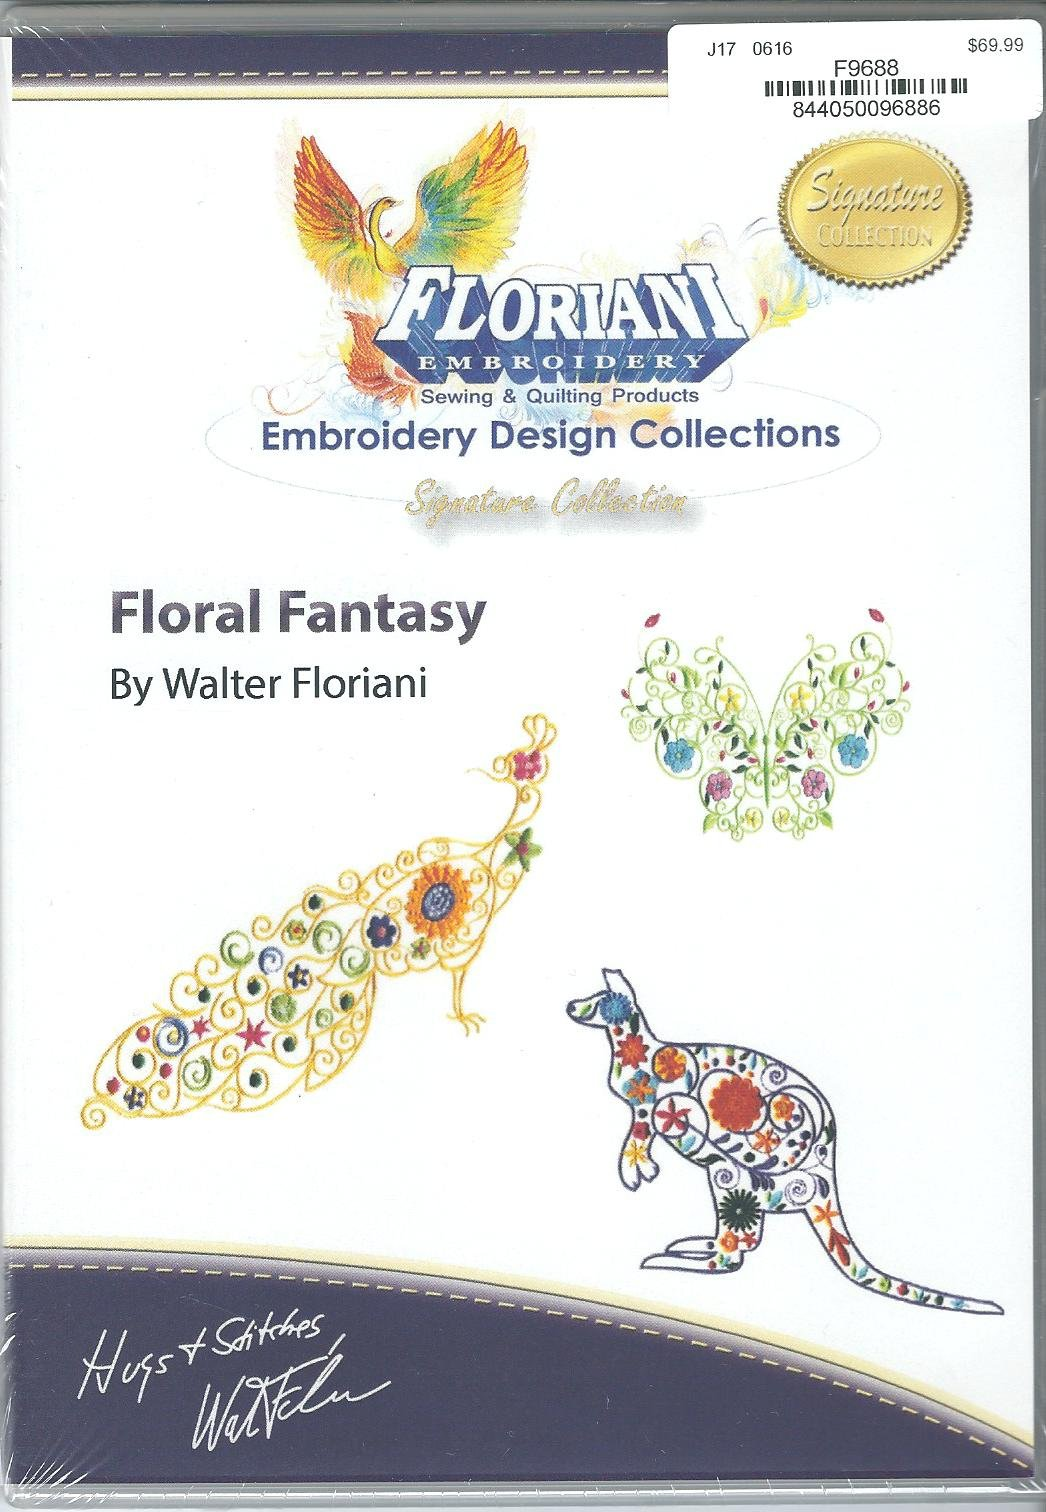 Floriani Embroidery Design Collection Floral Fantasy